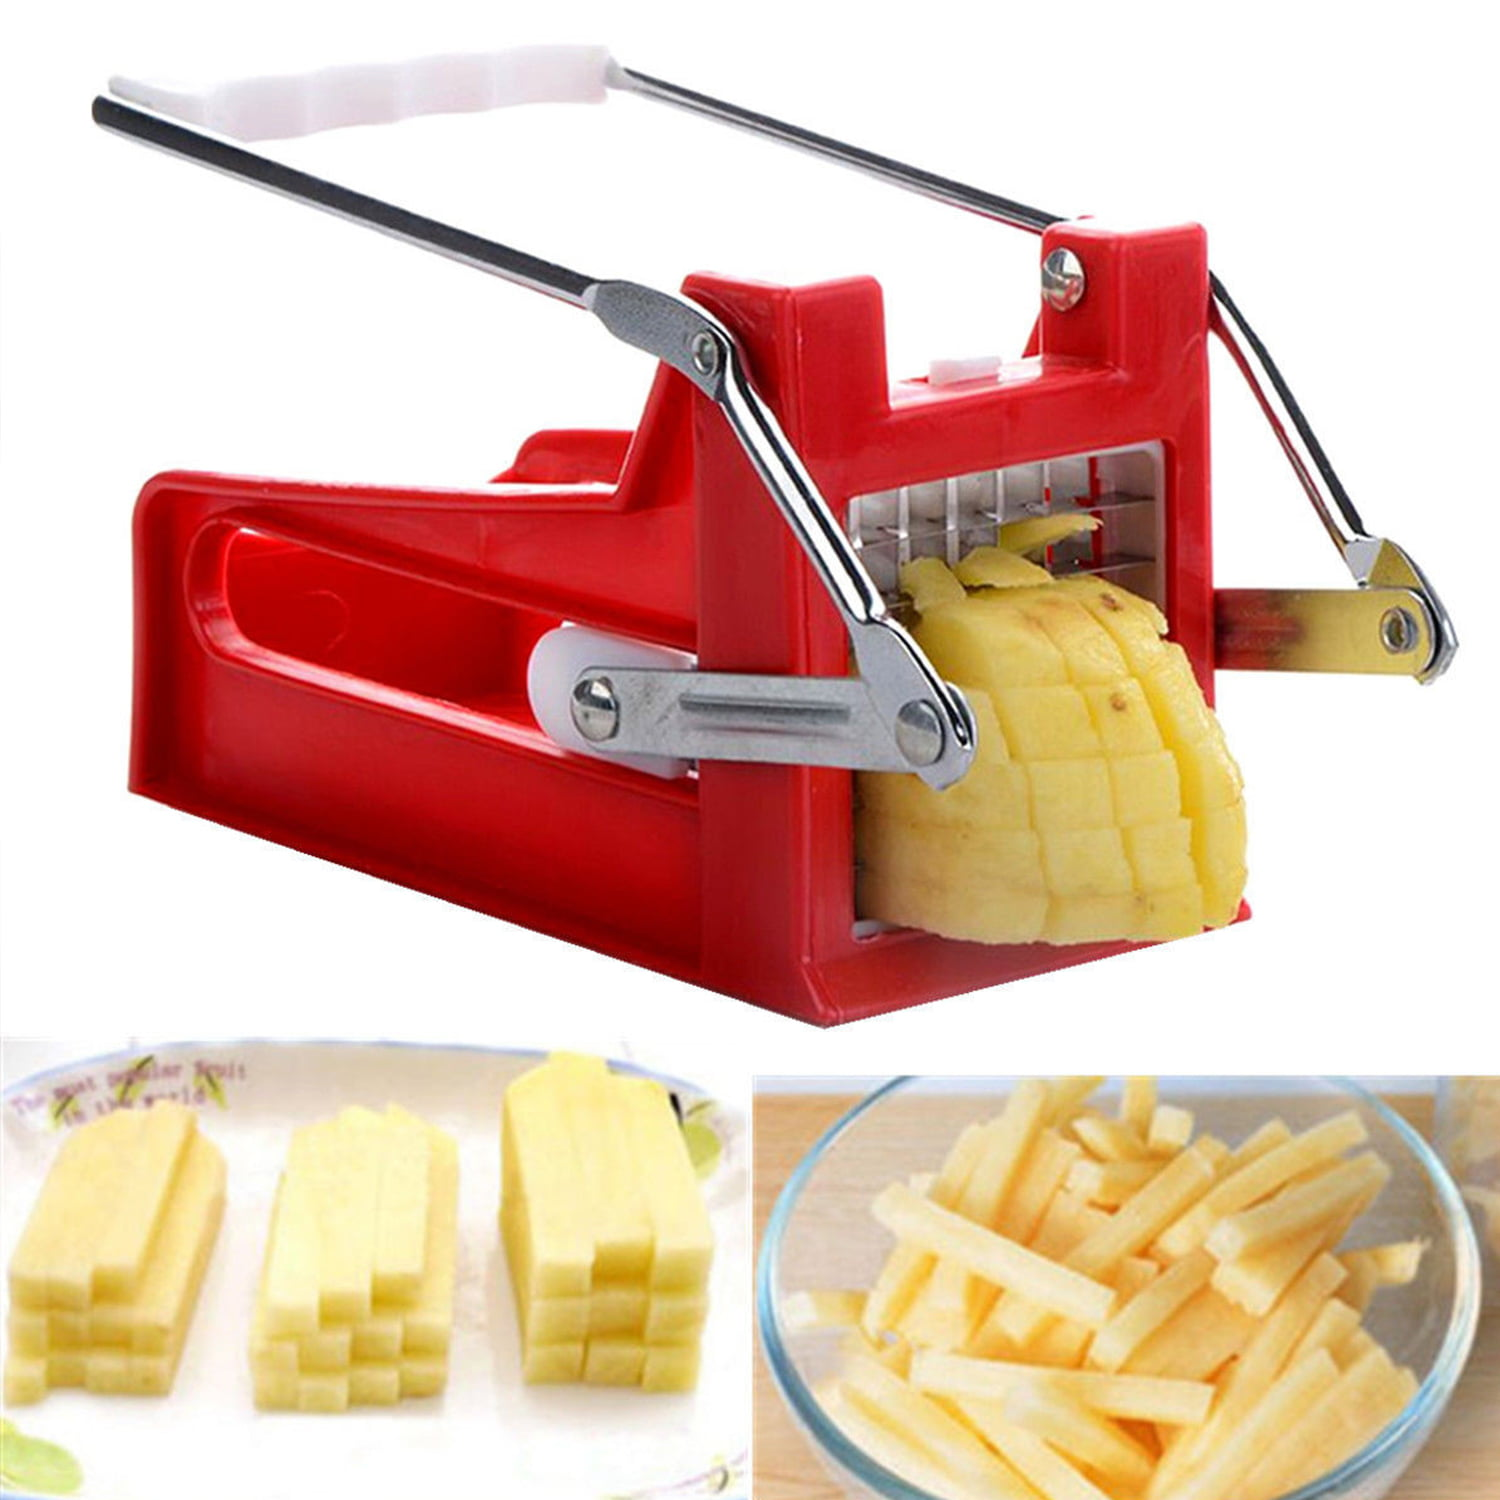 French Fry Cutter, Stainless Steel French Fry Cutter Potato 25 Holds 2 Blades Vegetable... by